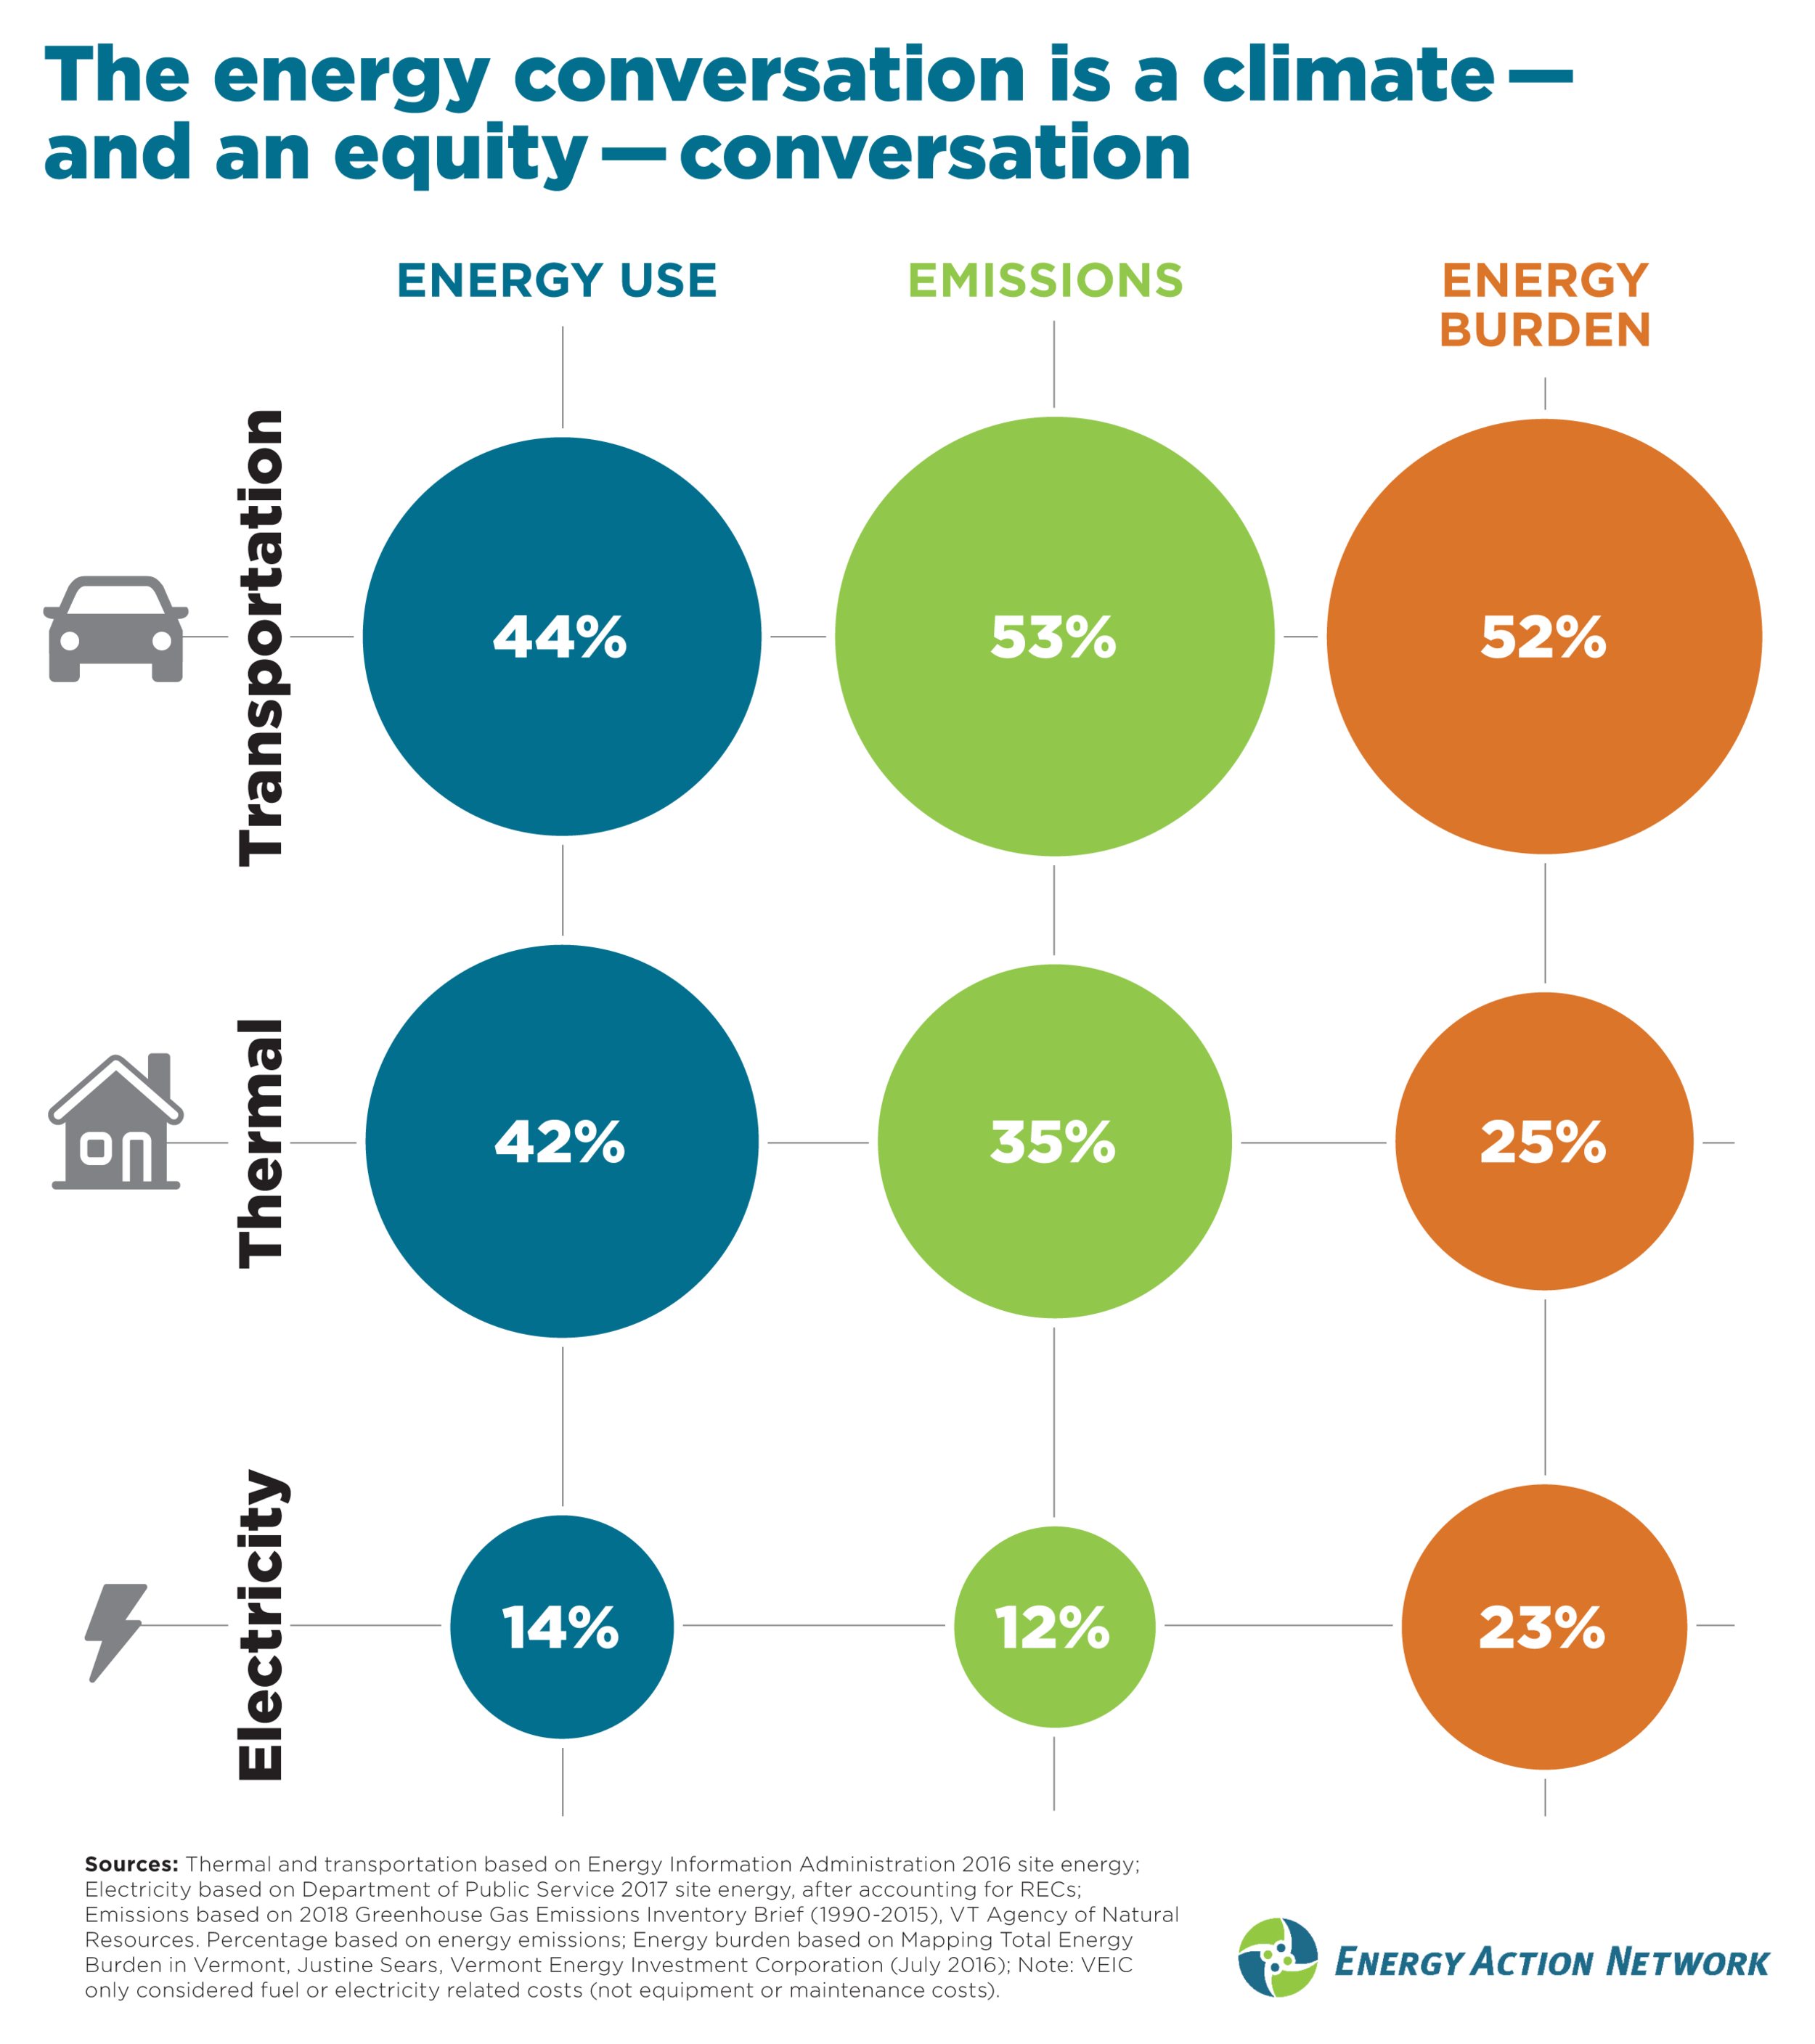 energy burden is the share of total energy costs for vermonters. looking across energy use, emissions produced, and energy burden, transportation is consistently the biggest challenge.